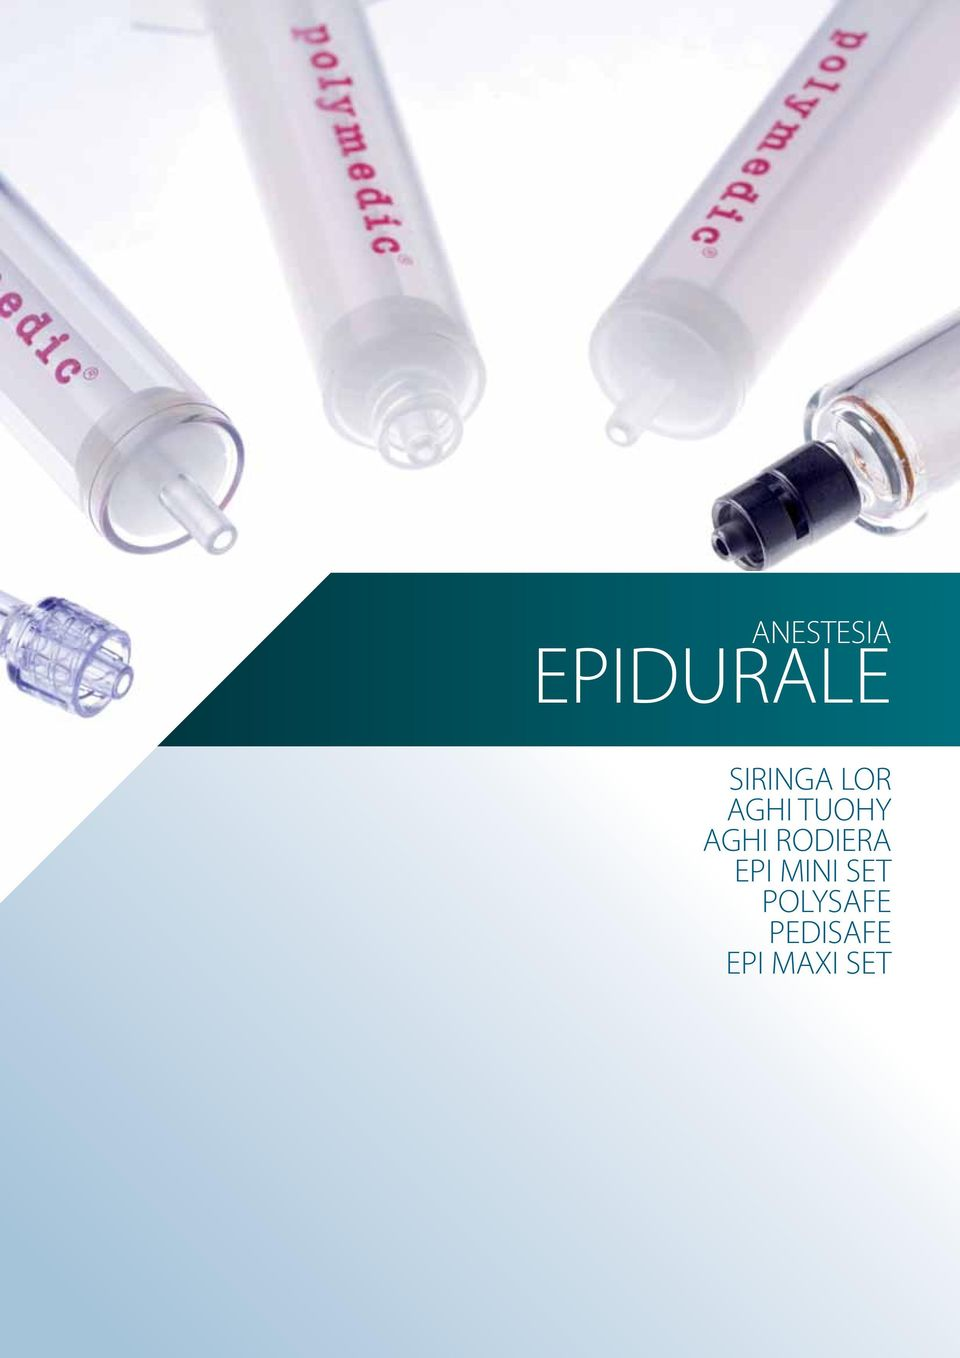 EPI MINI SET POLYSAFE